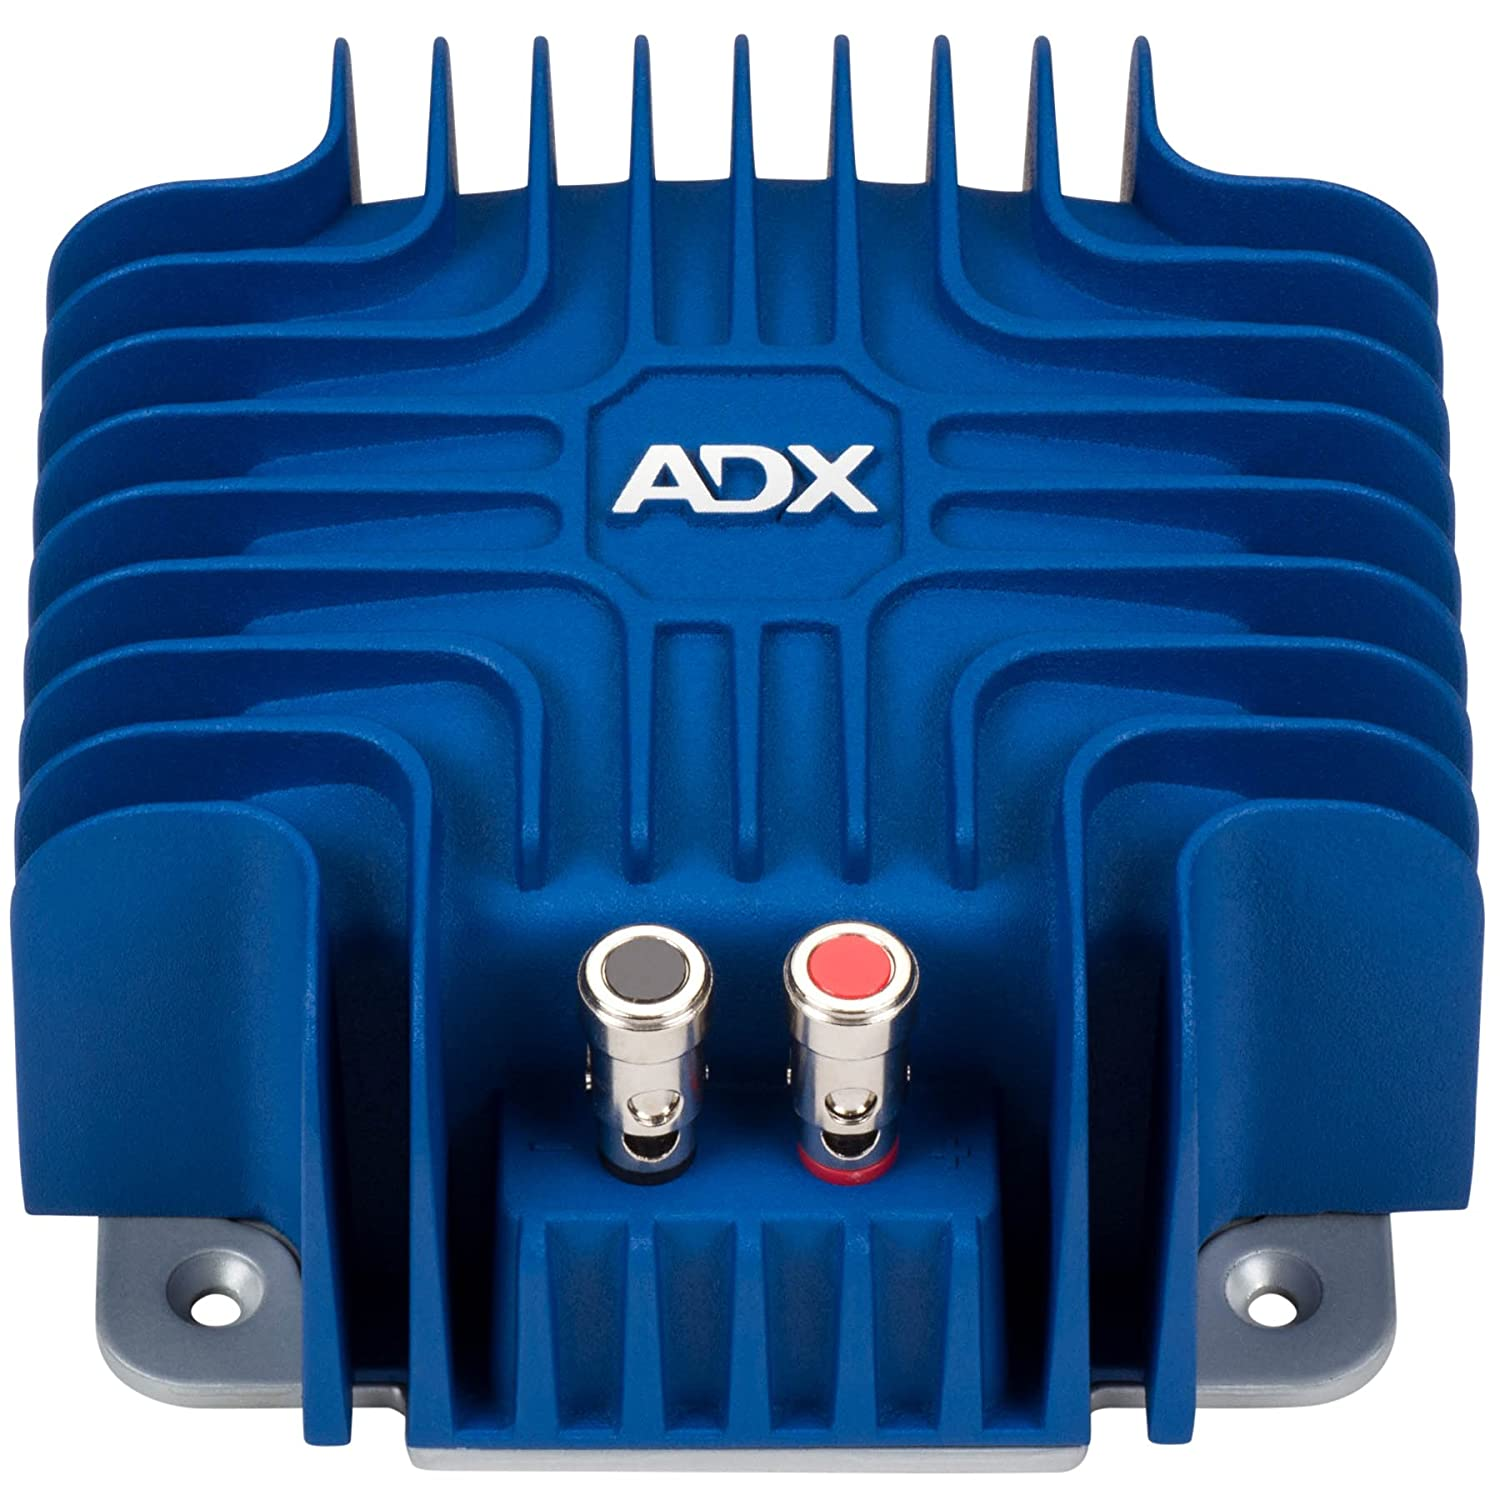 ADX Maximus Tactile Bass Shaker 4 Ohms